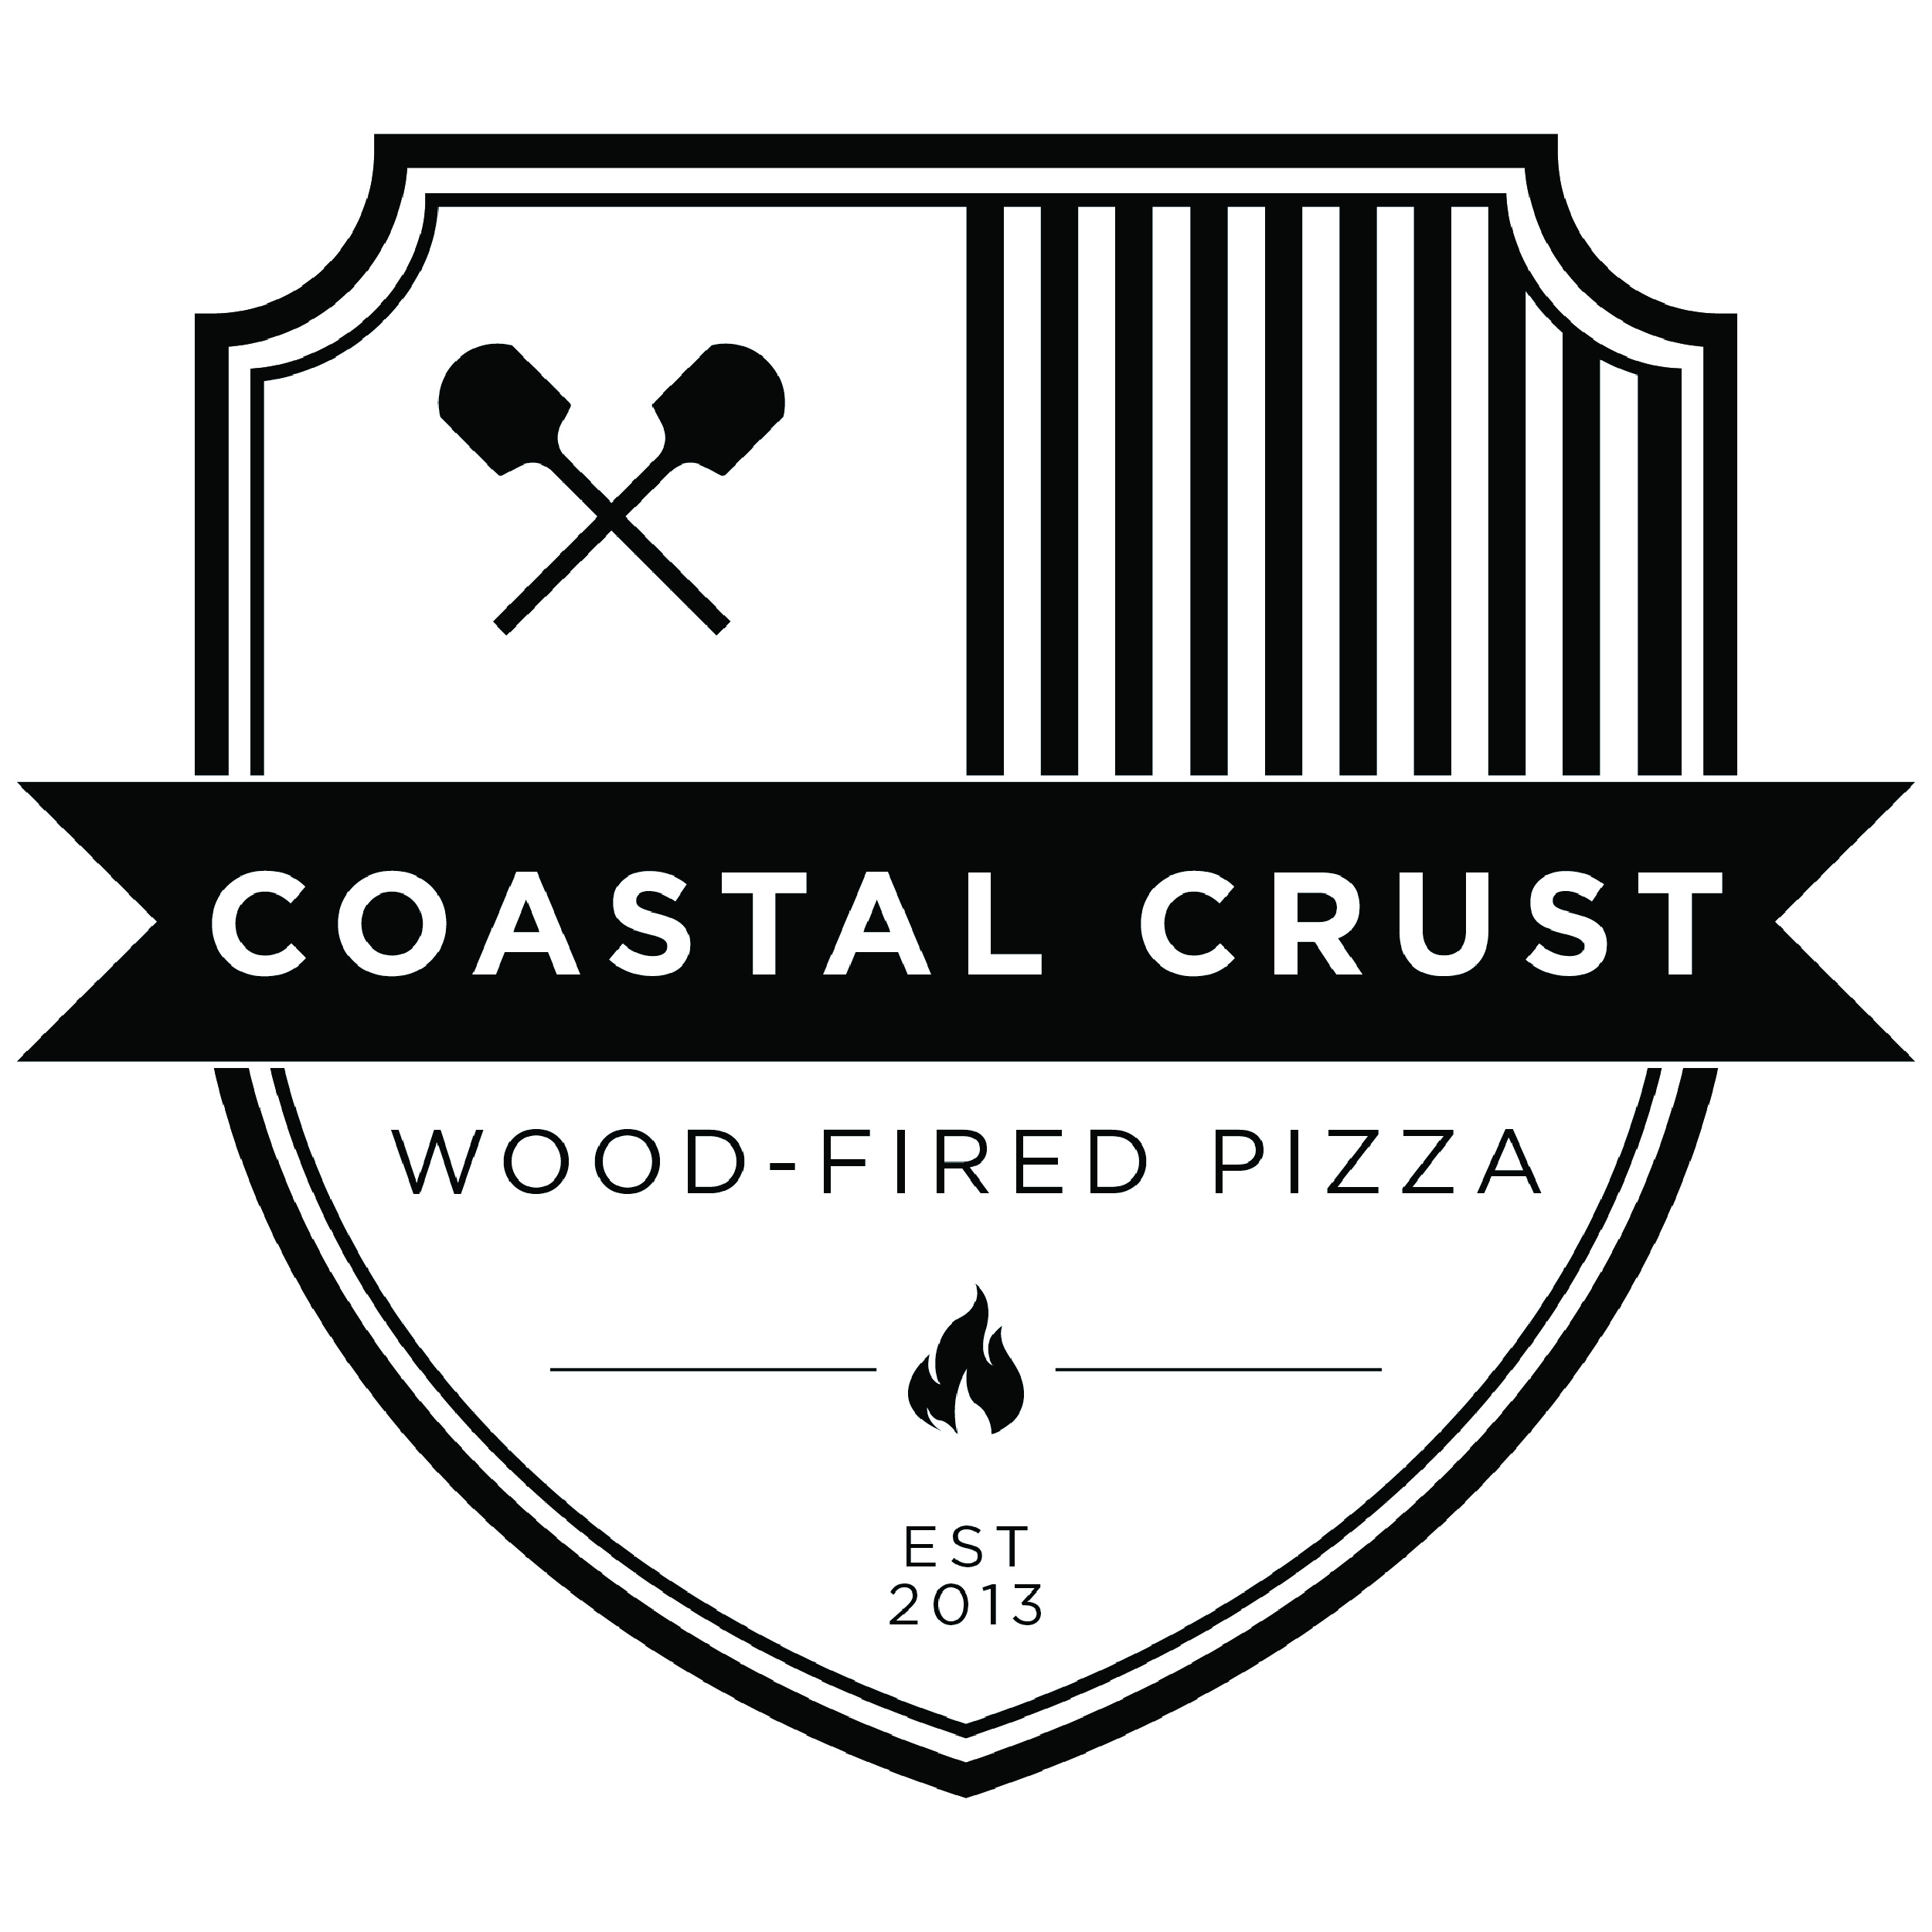 Coastal Crust Greenville